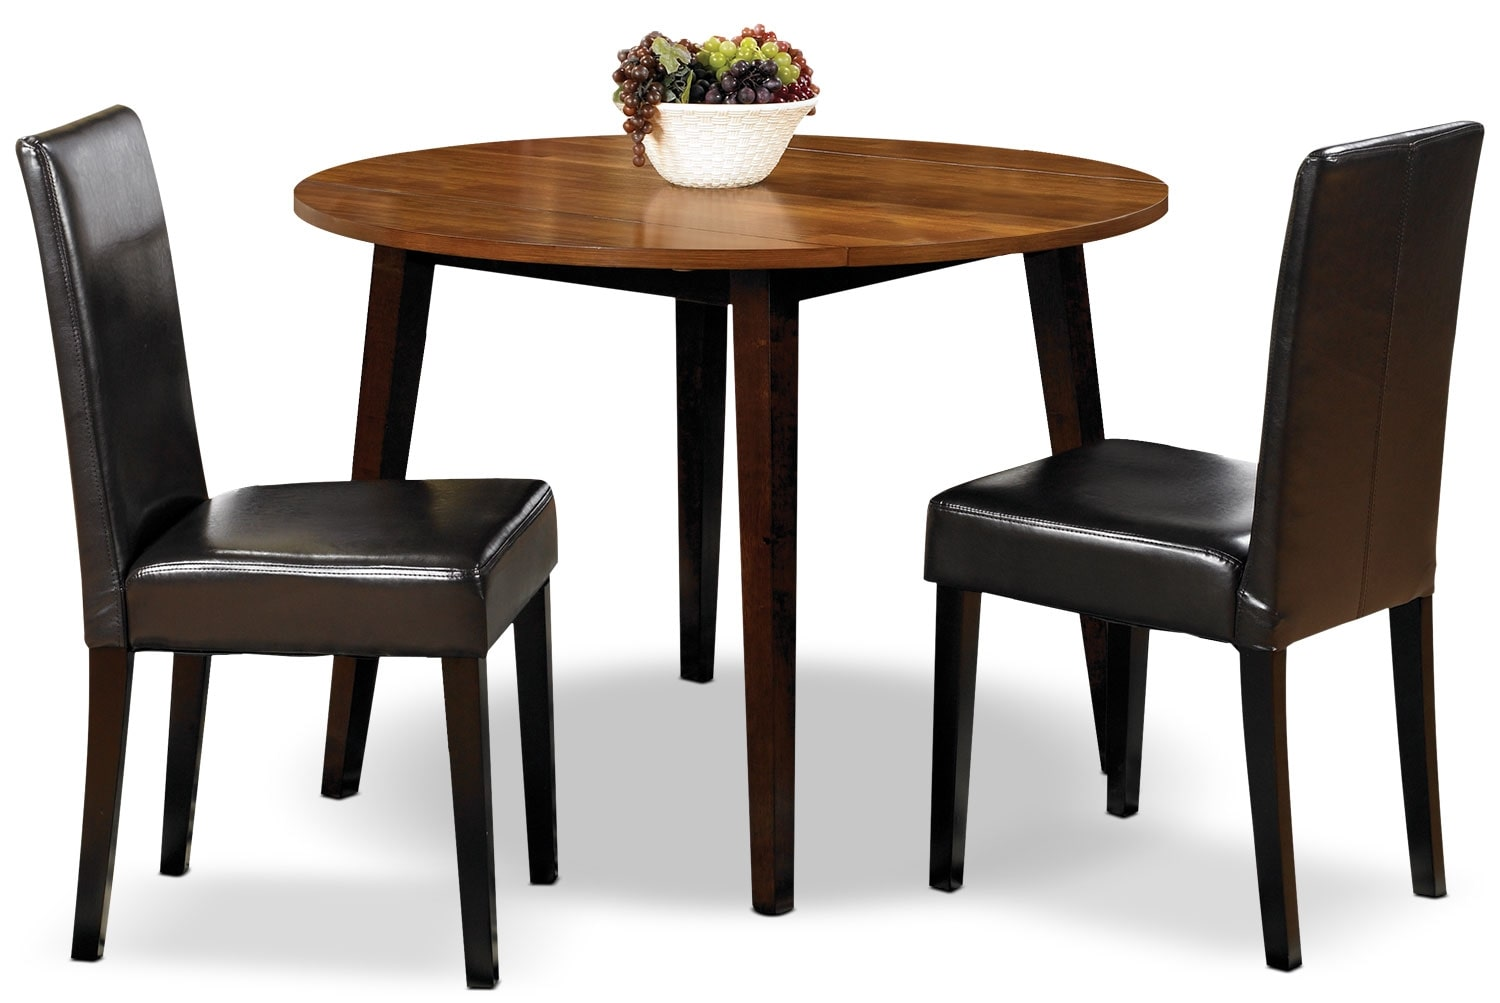 Dining Room Furniture - Zara 3-Piece Dining Package with Brown Chairs